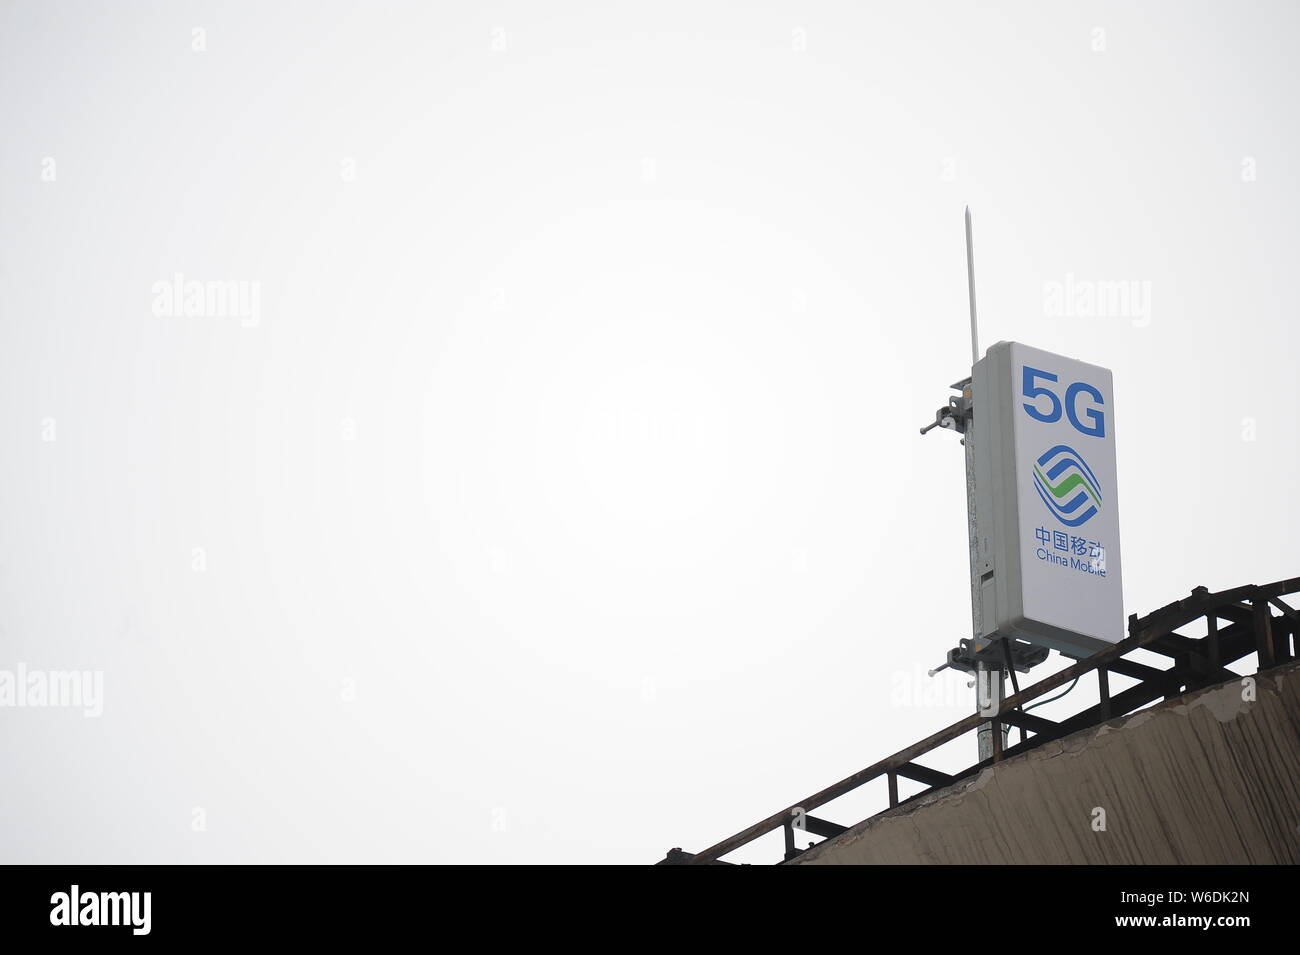 FILE--Logos of 5G and China Mobile are seen on the rooftop of a